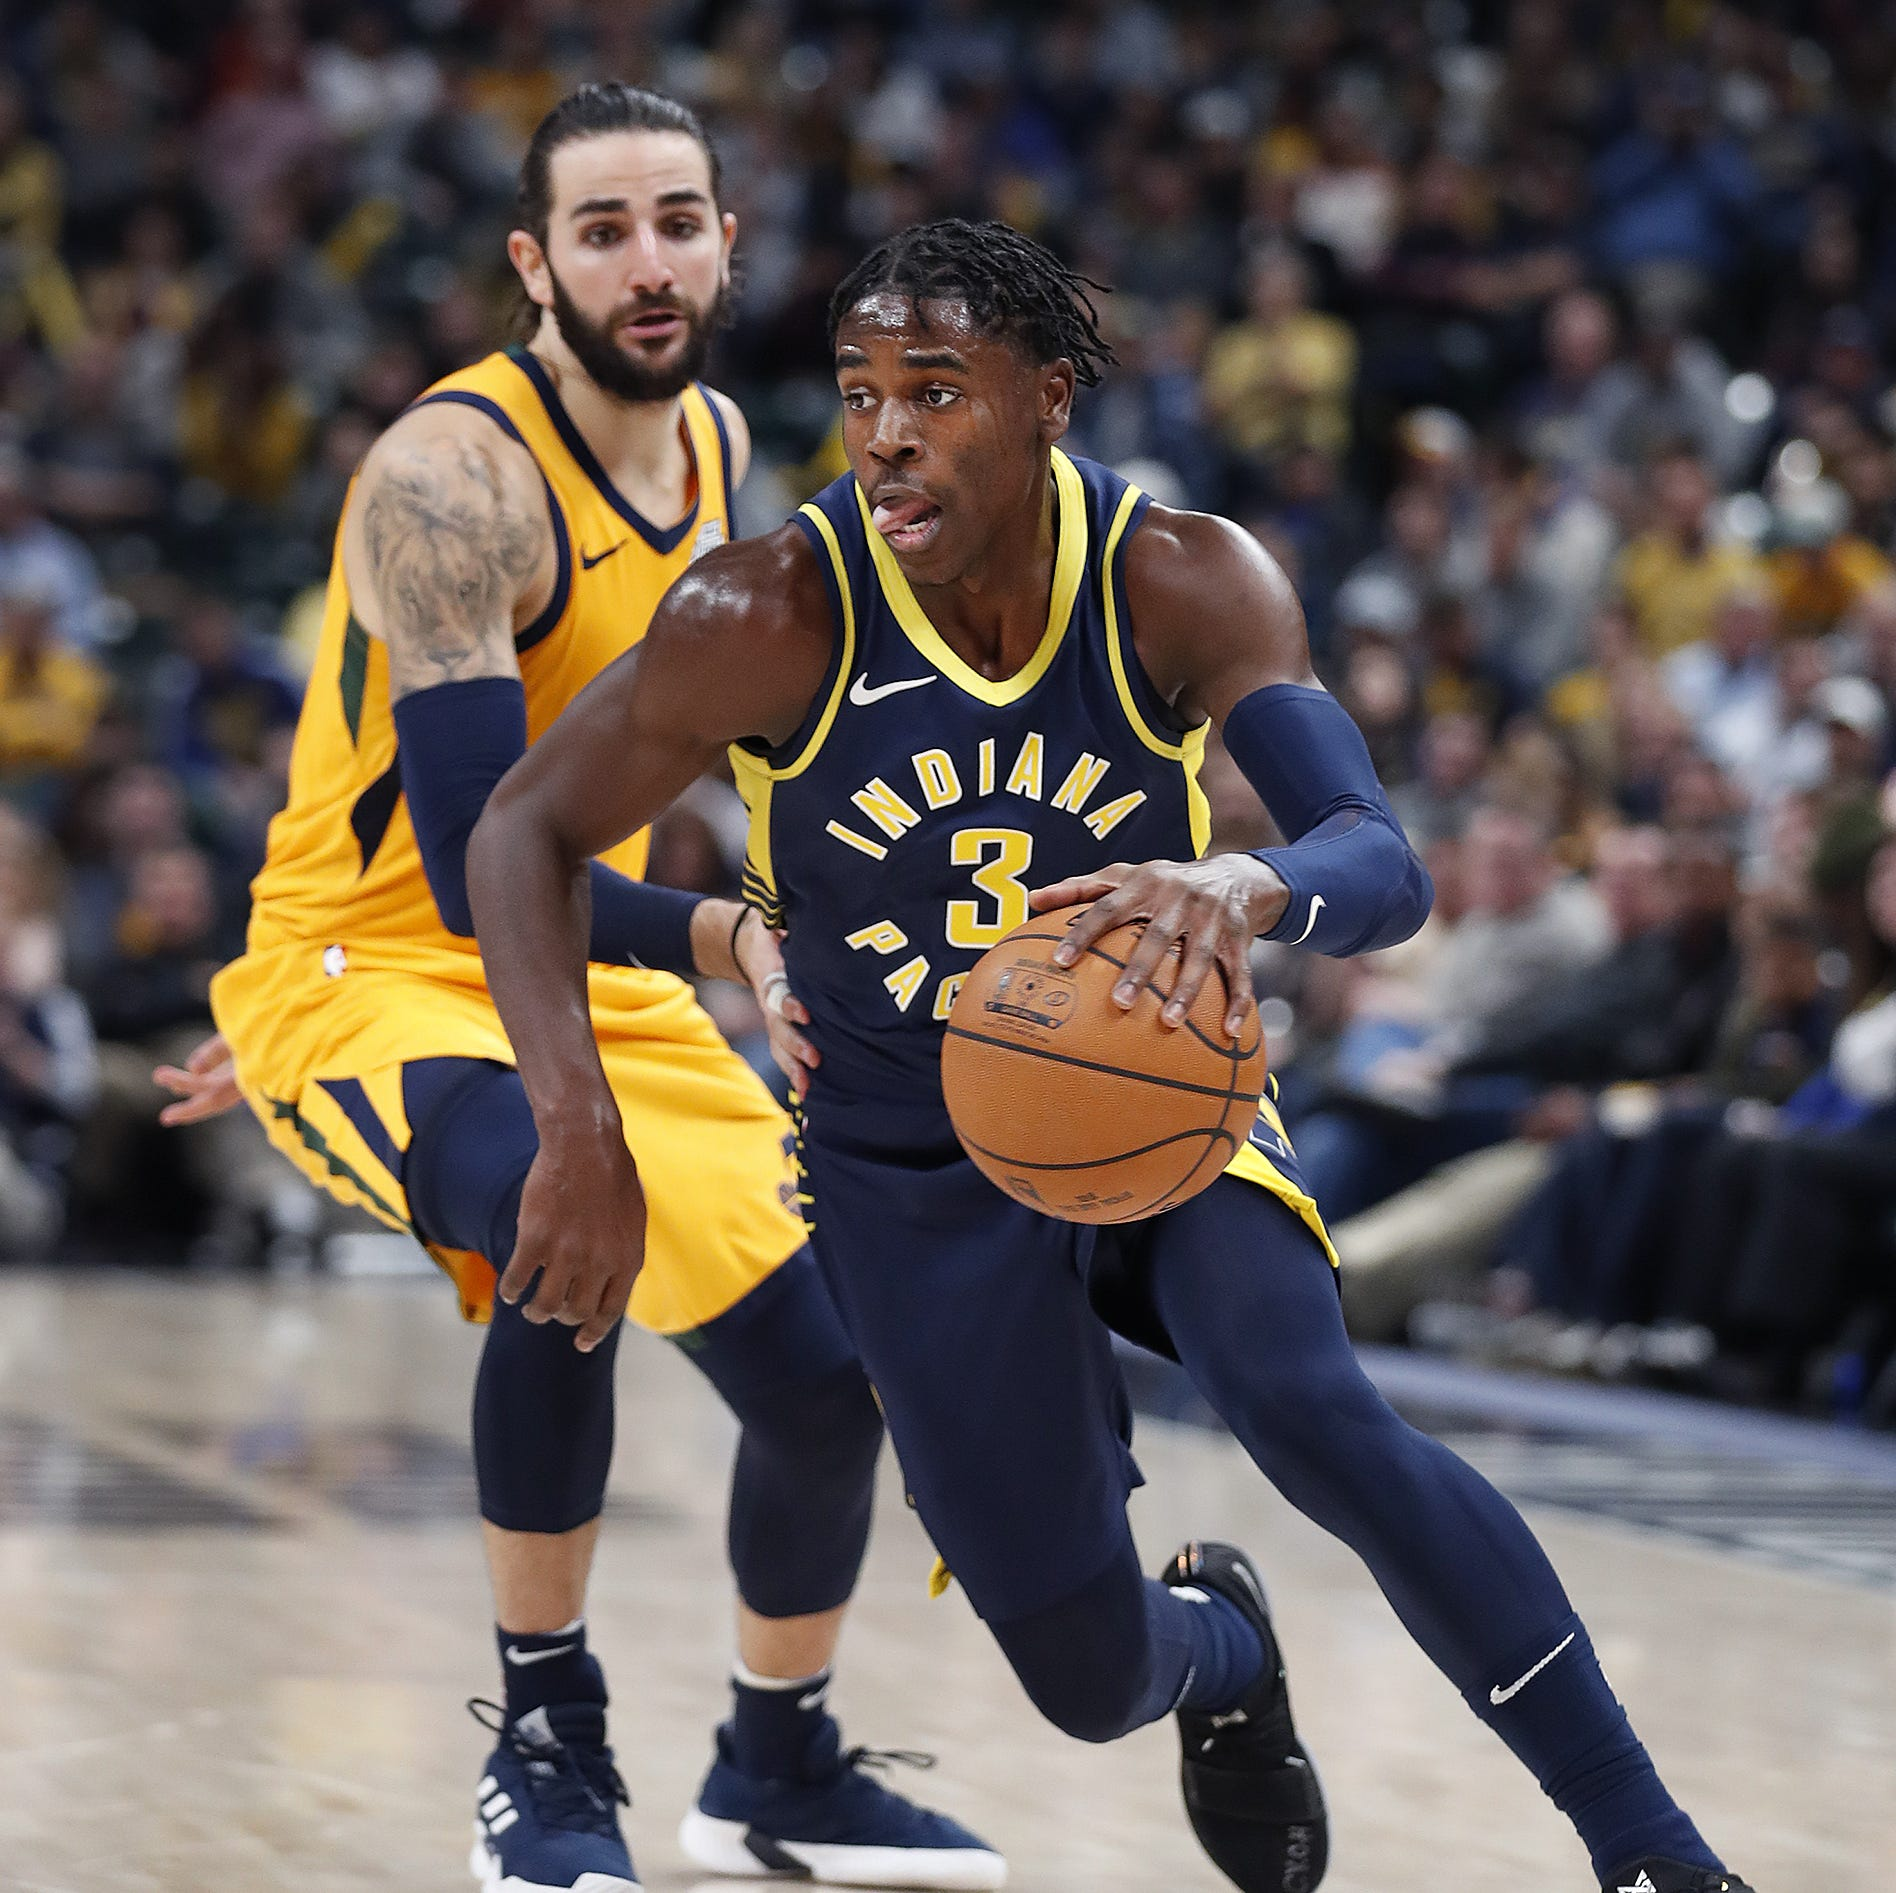 Though role about to be reduced, Aaron Holiday earned Pacers' trust